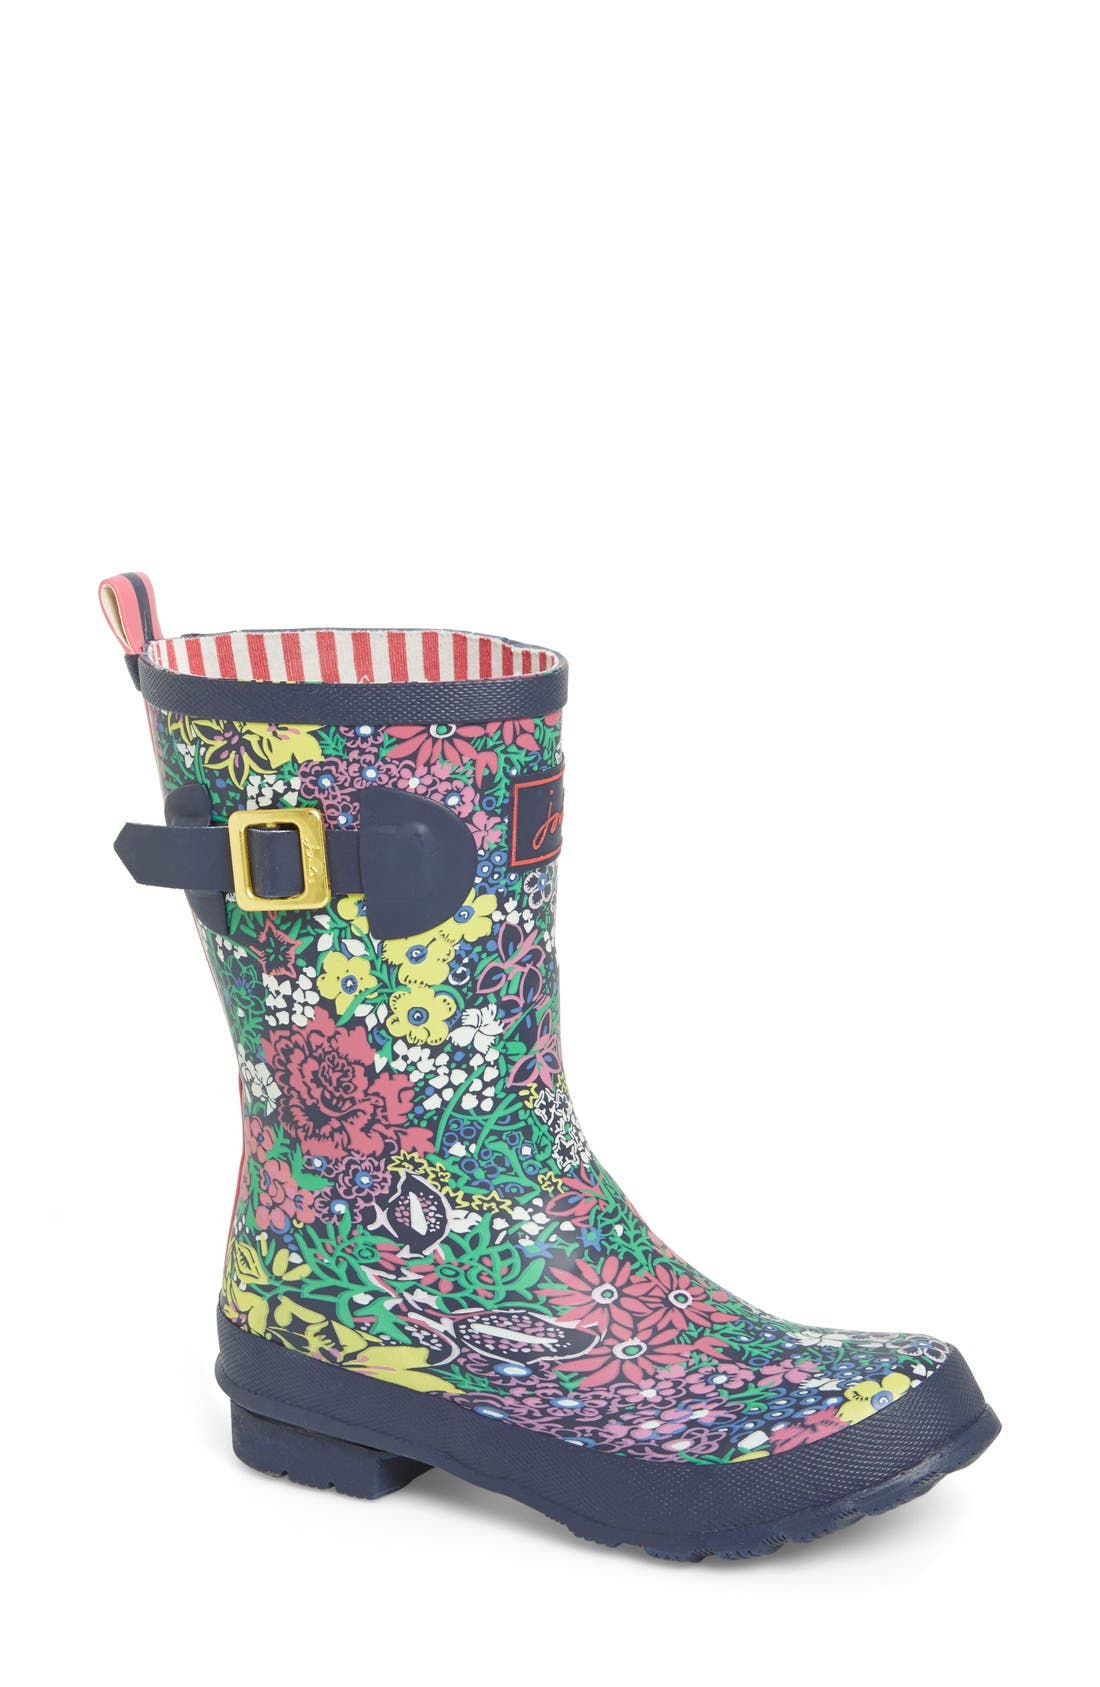 JOULES Mid Height Print Welly Rain Boot, Main, color, 401